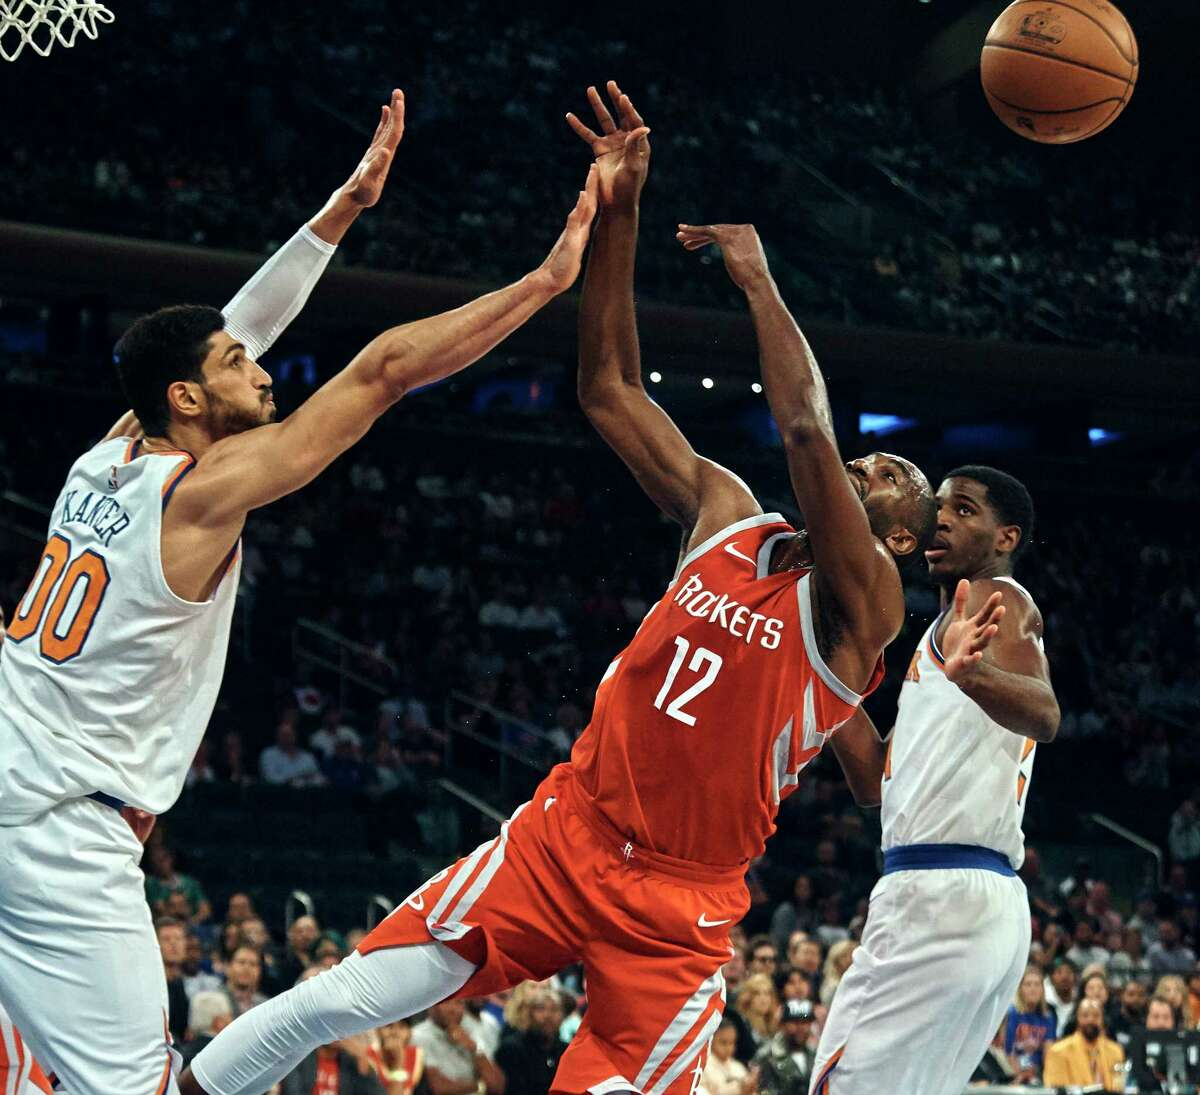 Houston Rockets' Luc Mbah a Moute (12) shoots next to New York Knicks' Enes Kanter (00) during the first half of a preseason NBA basketball game at Madison Square Garden in New York, Monday, Oct. 9, 2017. (AP Photo/Andres Kudacki)